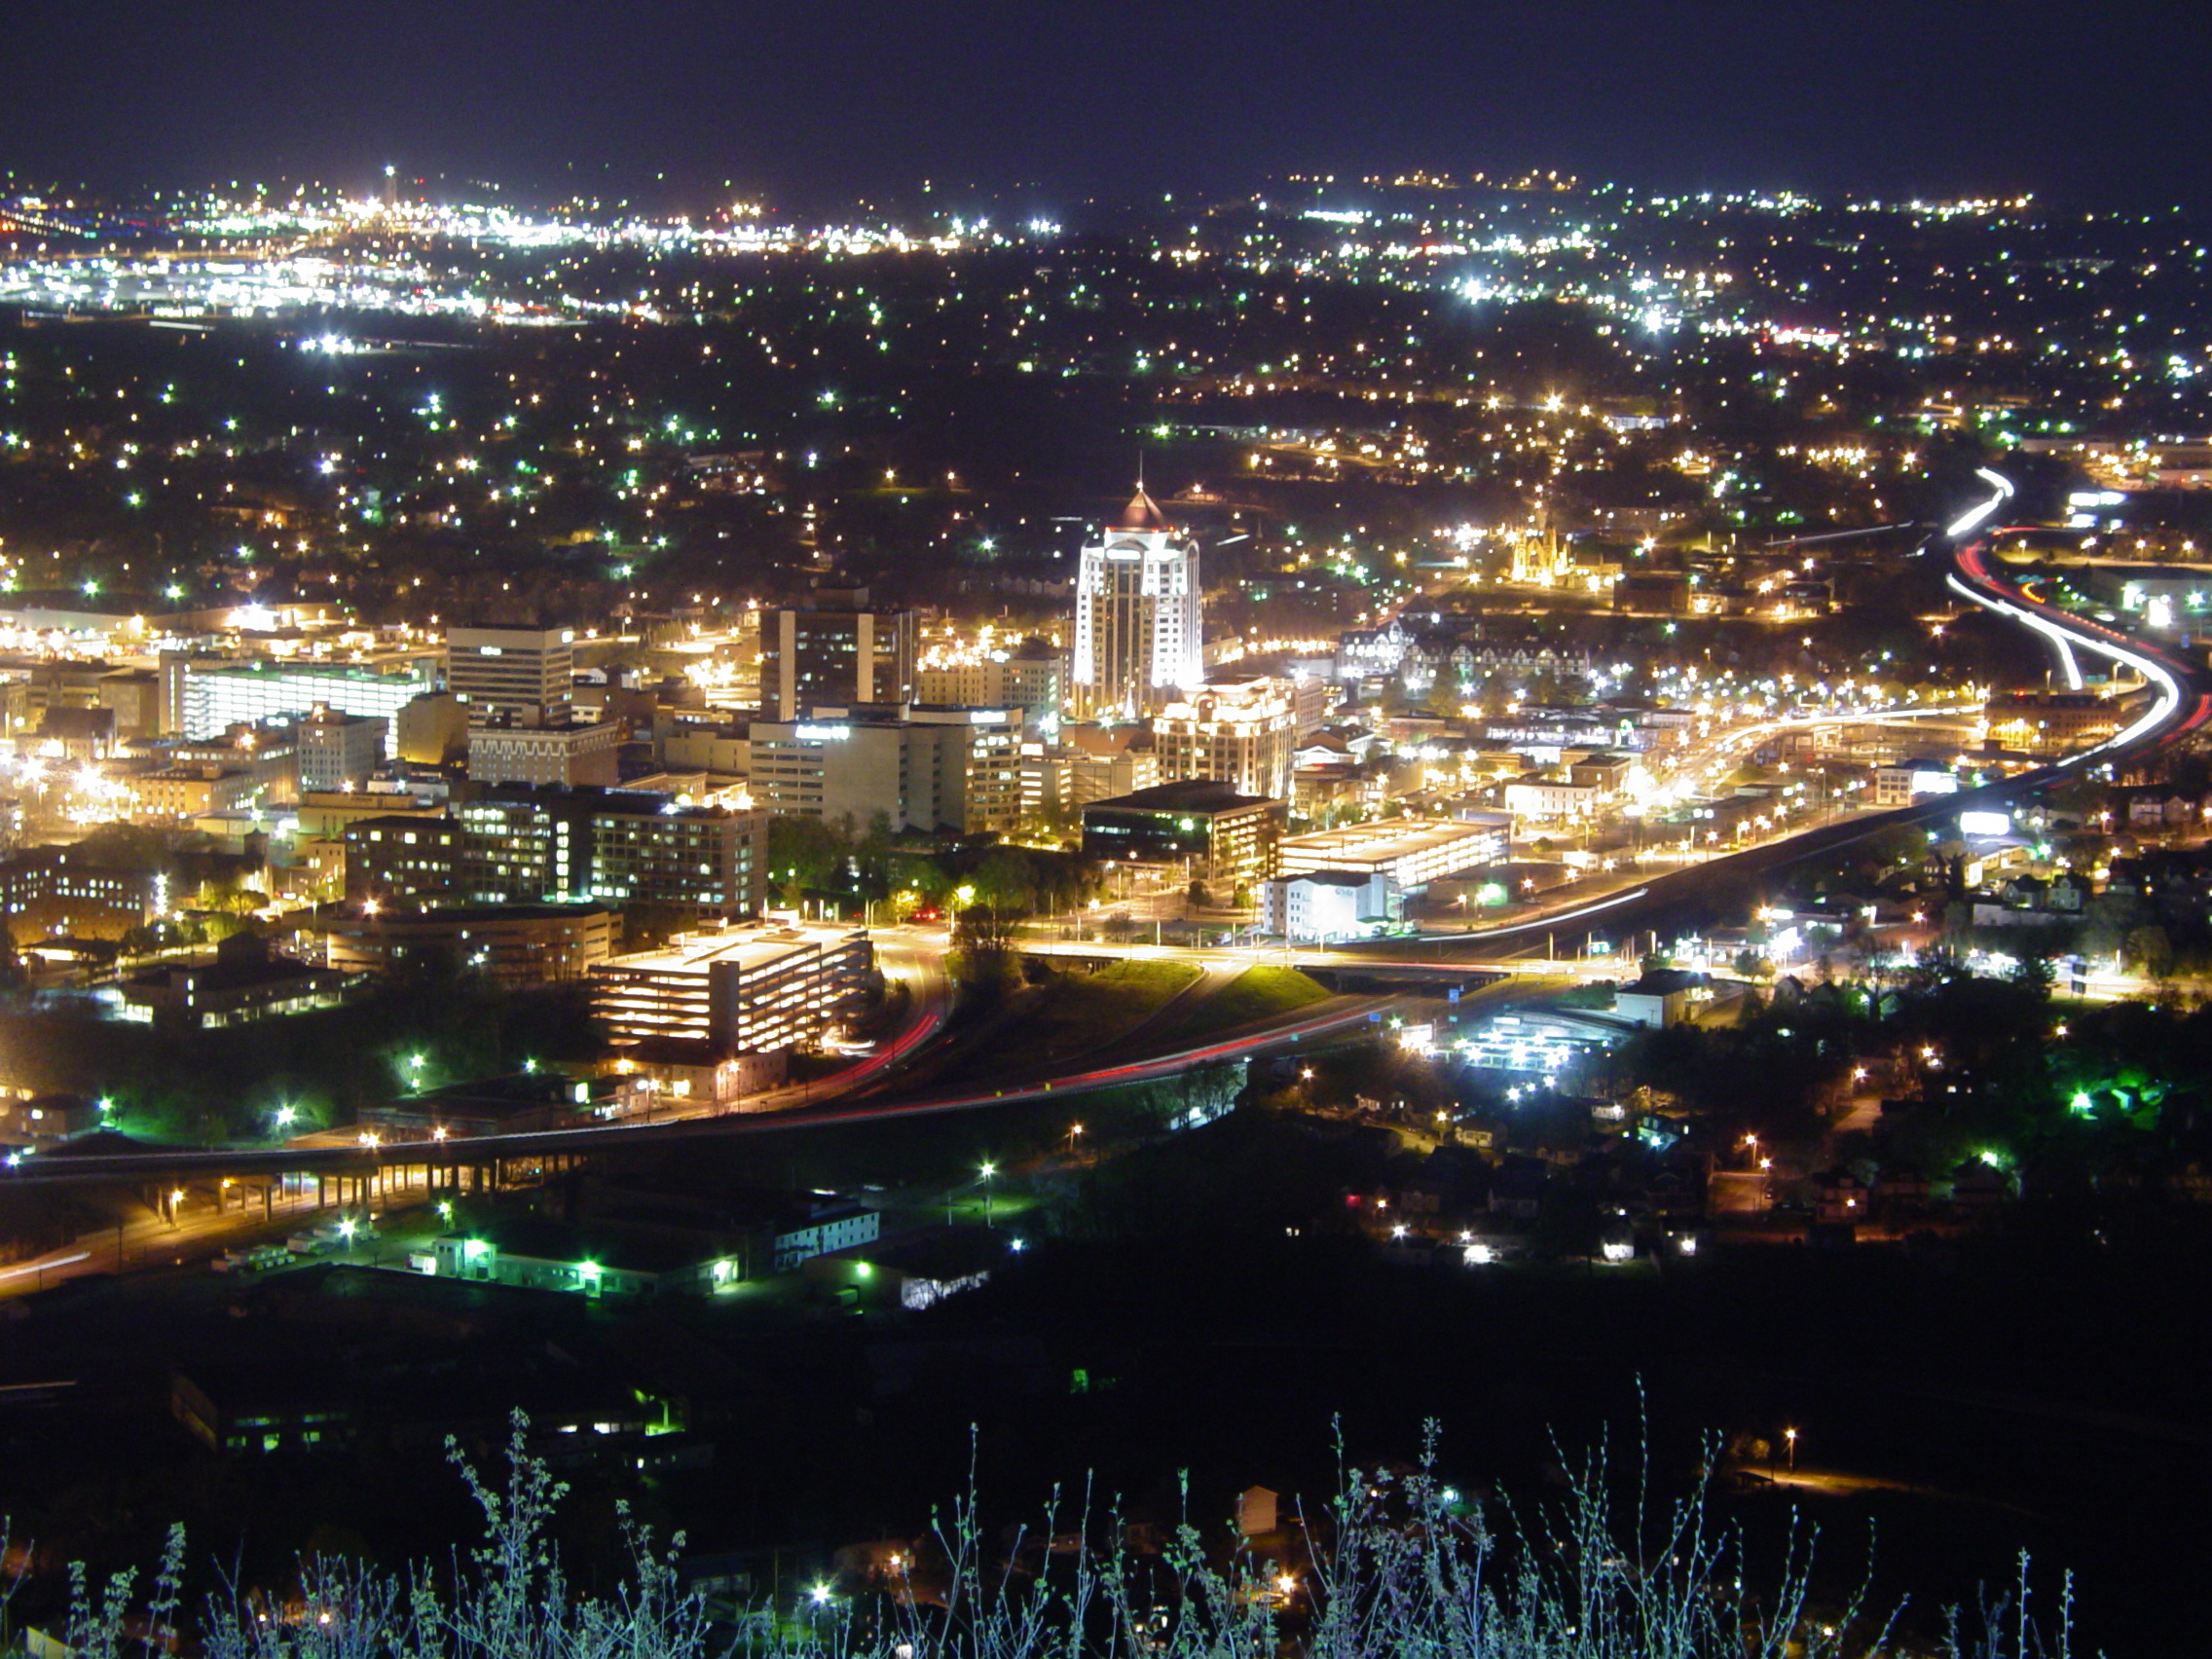 Roanoke,_Virginia_at_night_April_22.jpg